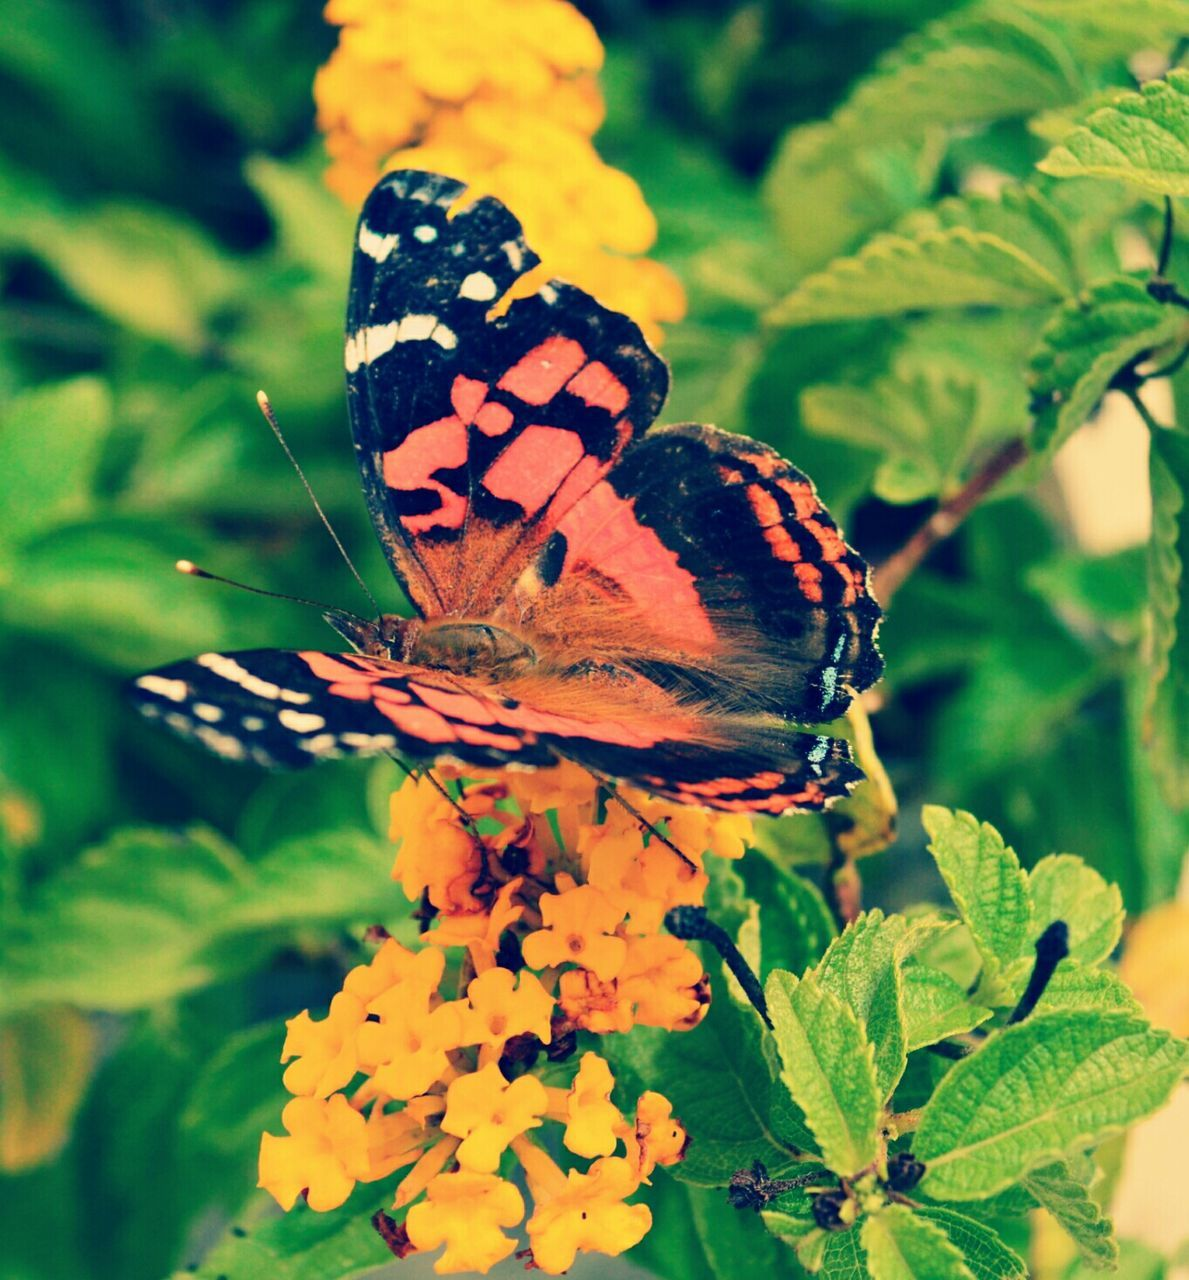 animals in the wild, insect, animal themes, one animal, plant, nature, butterfly - insect, leaf, close-up, wildlife, beauty in nature, animal wildlife, outdoors, growth, flower, no people, day, focus on foreground, fragility, pollination, freshness, perching, flower head